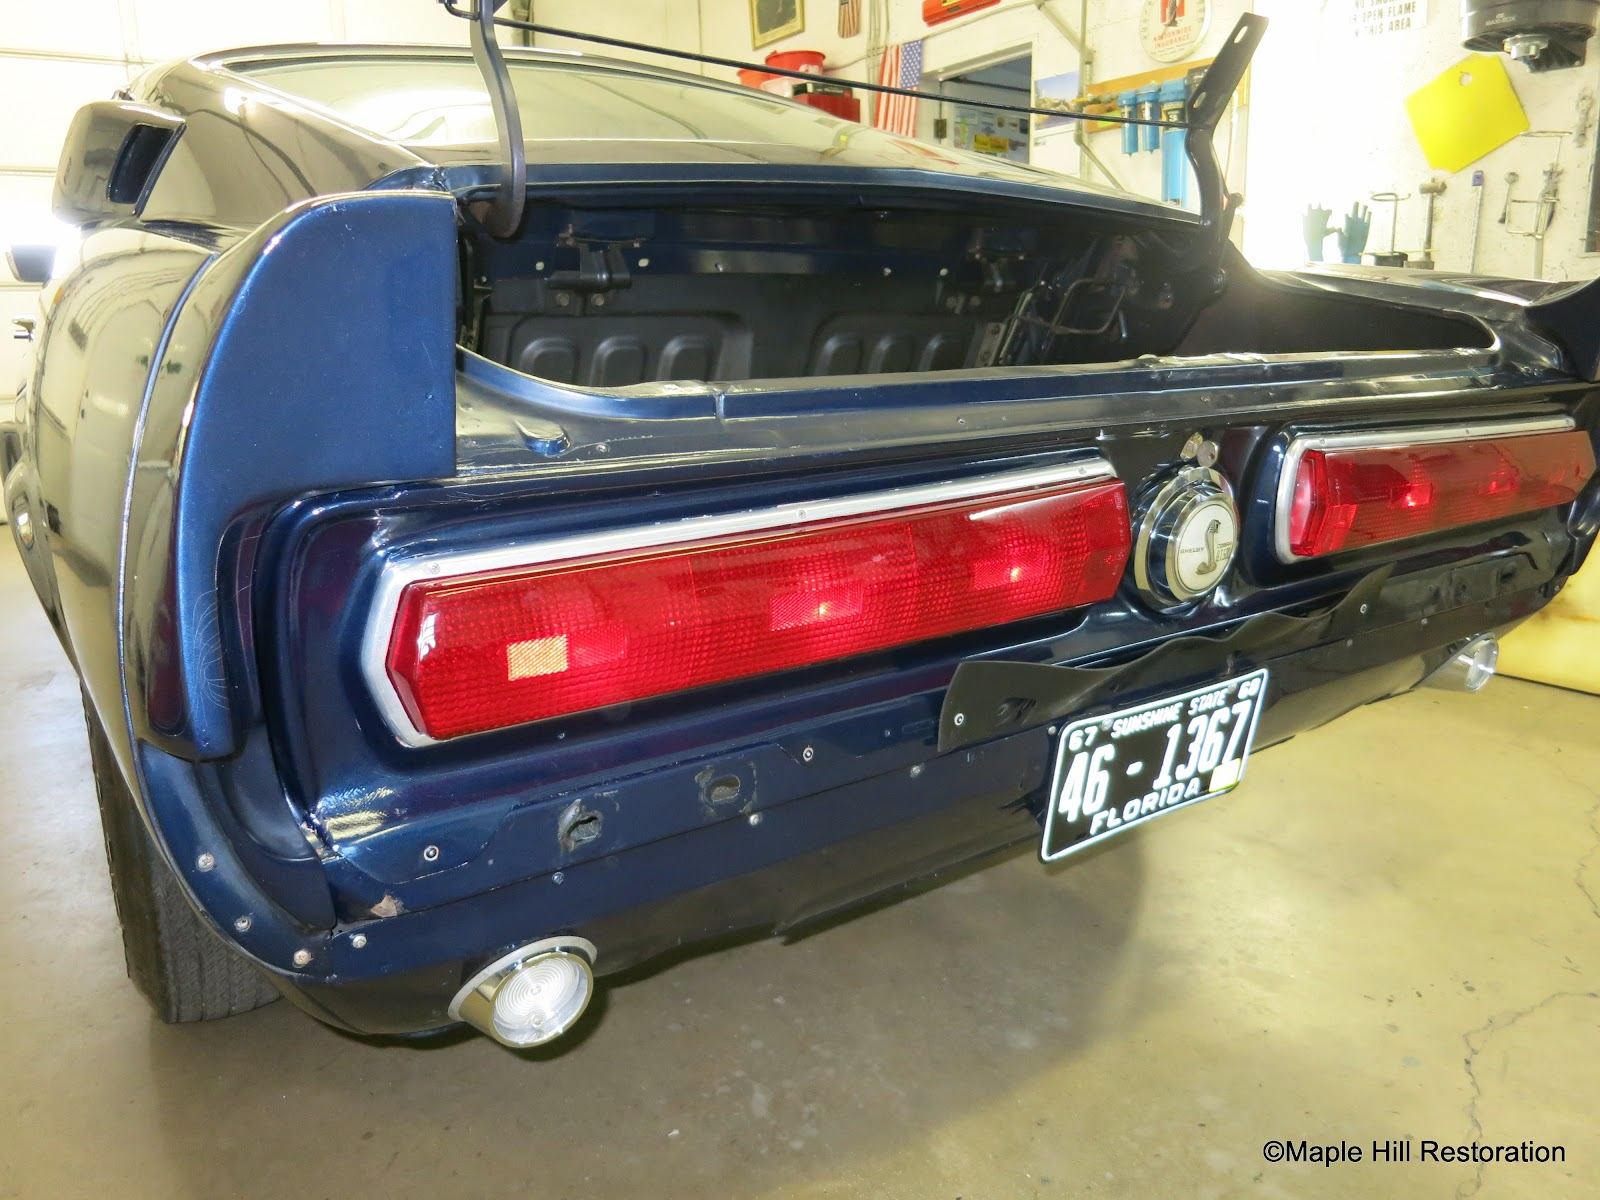 The 67 Shelby Mustangs received modifications to the rear tail light panel to fit the long style Thunderbird tail lights. The modifications made by Shelby ... & Virginia Classic Mustang Blog: Just the Details...1967 Shelby ... azcodes.com